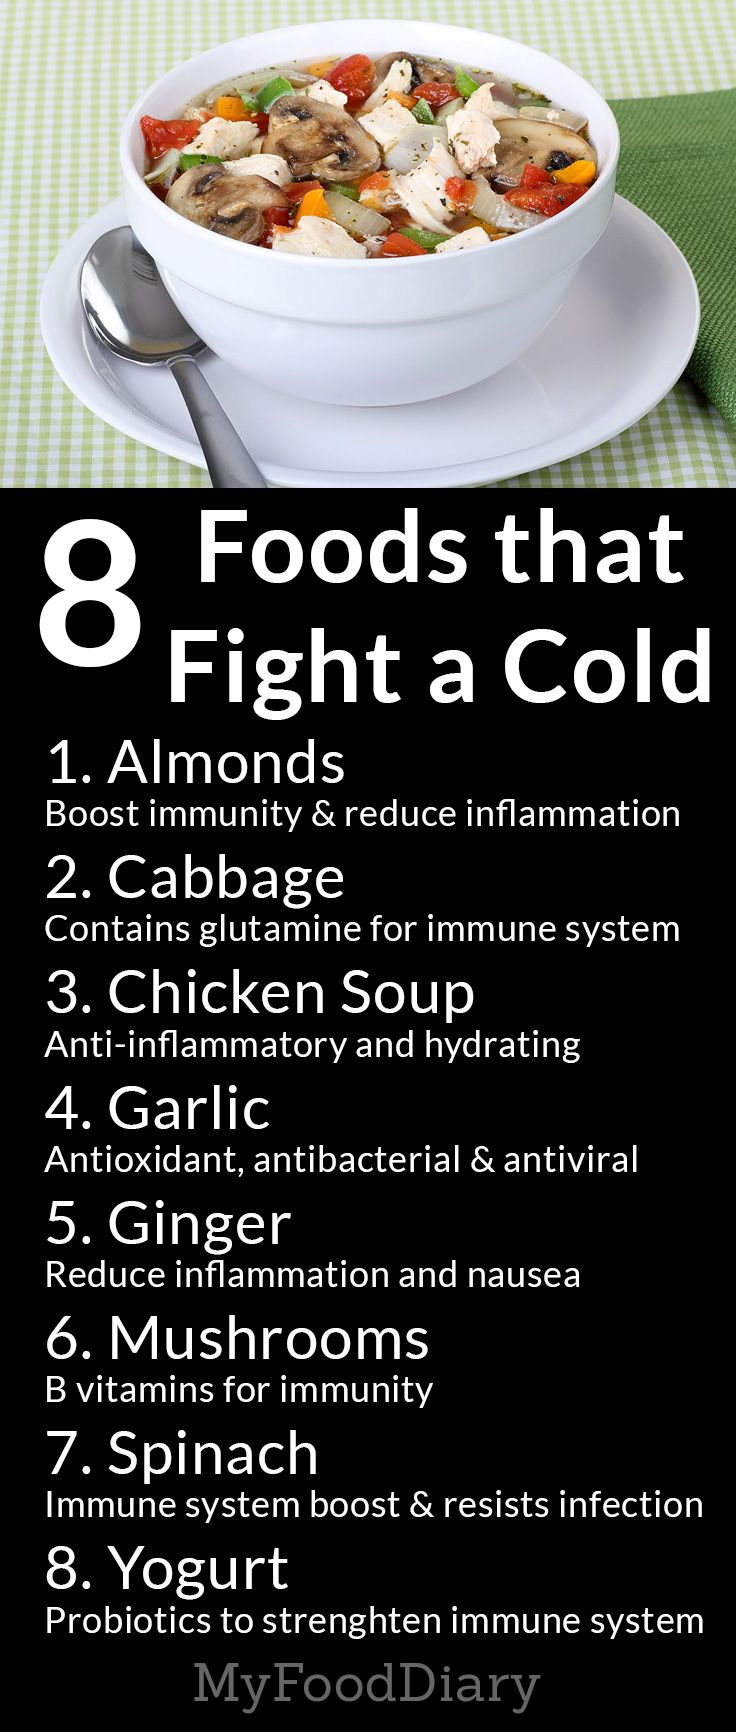 While there is no cure for the common cold, these 8 foods can build your immune system to help fight the cold virus and other bugs.